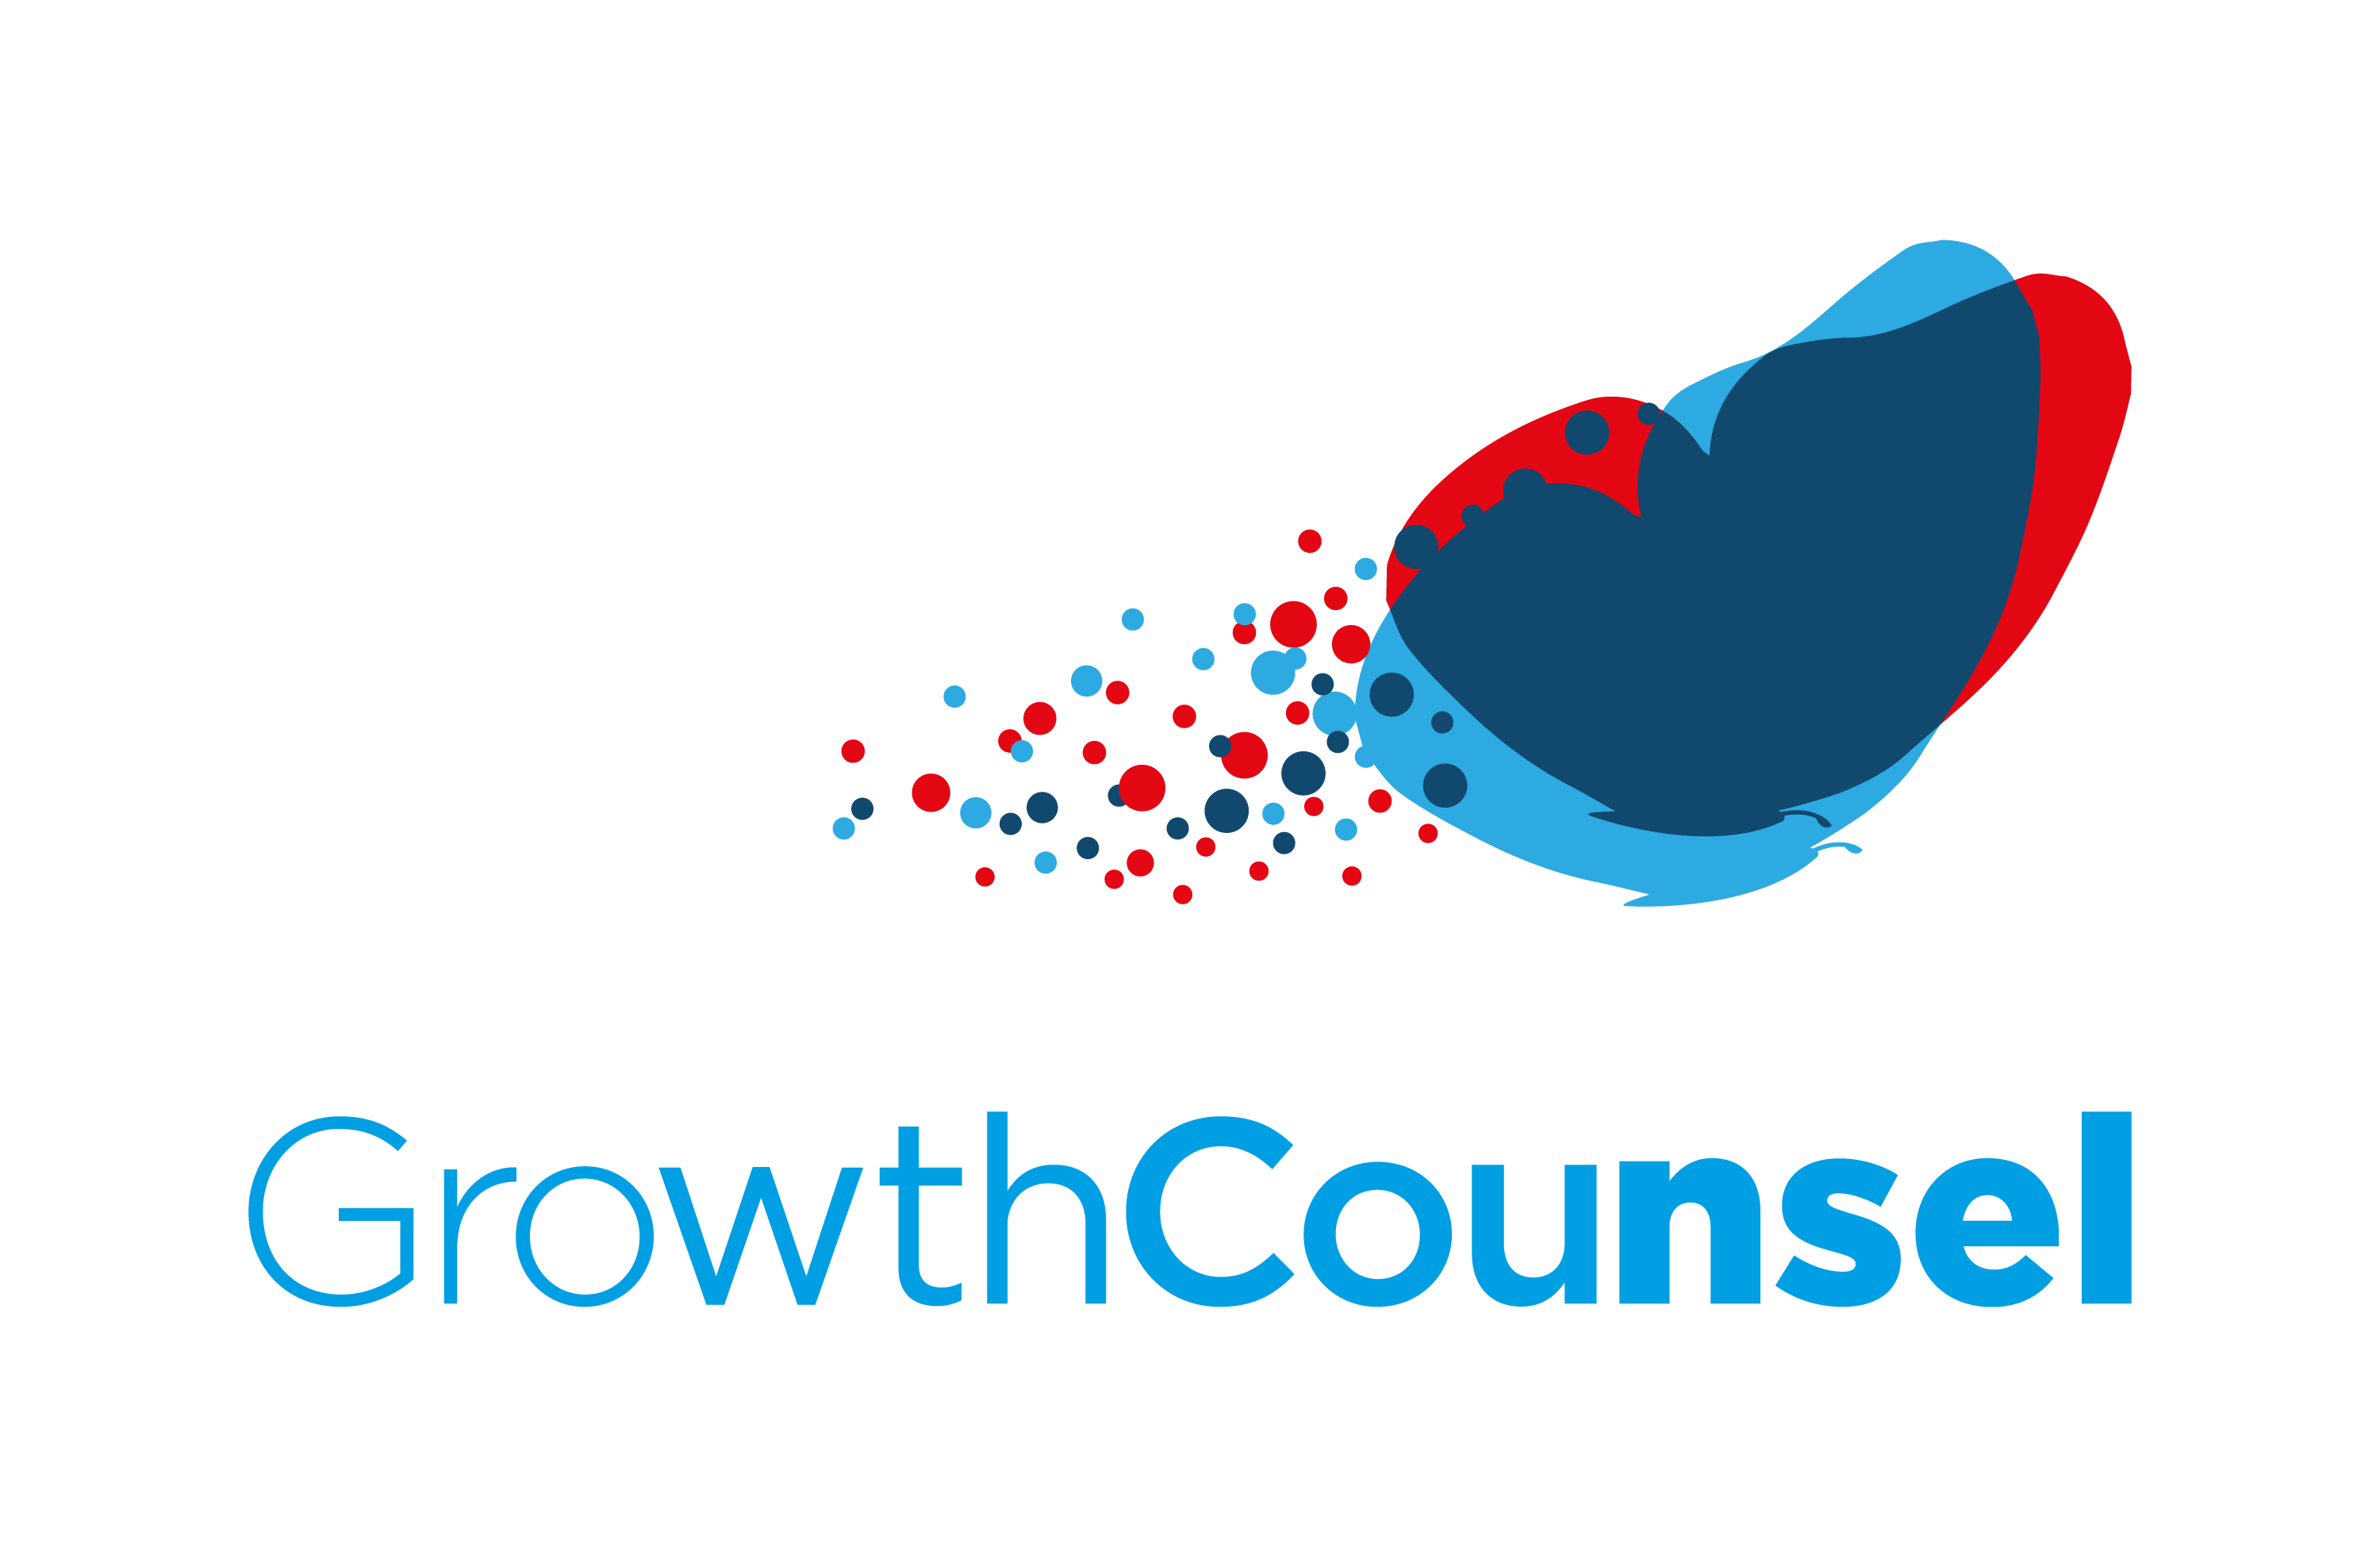 Growth Counsel